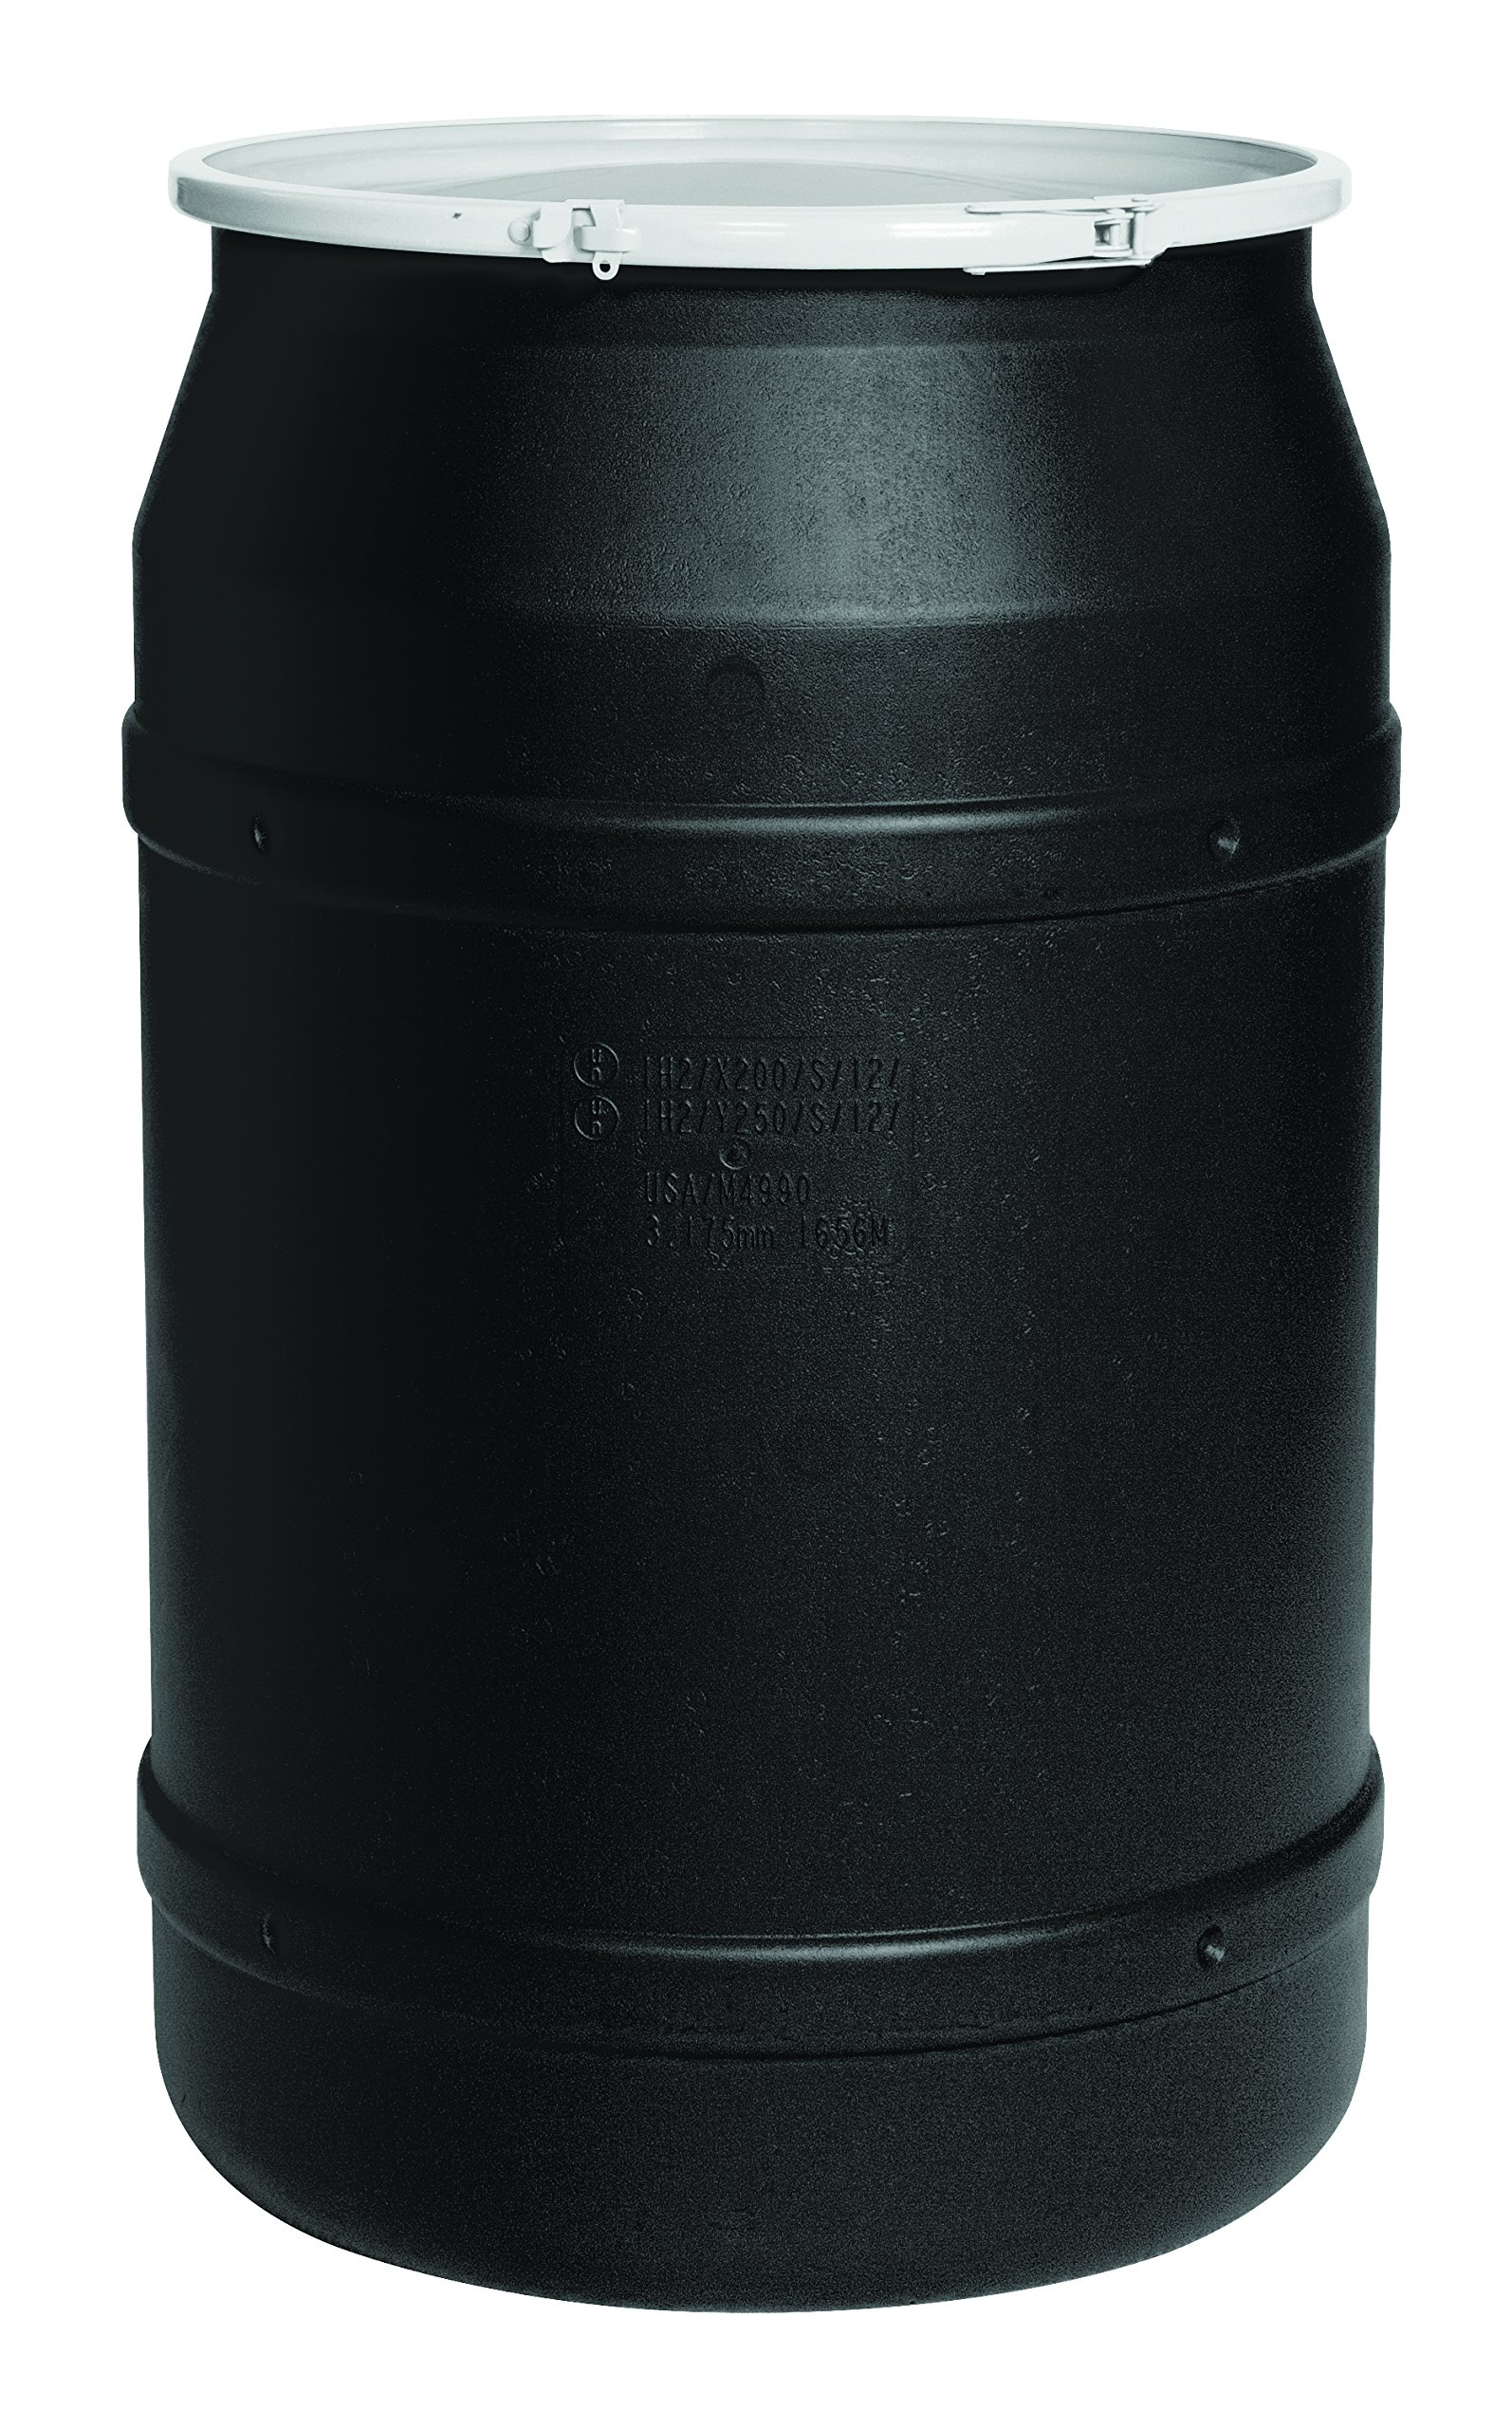 Eagle 1656BLK Black Drum with Poly Lever Lock Ring, 55 gal Capacity by Eagle (Image #1)